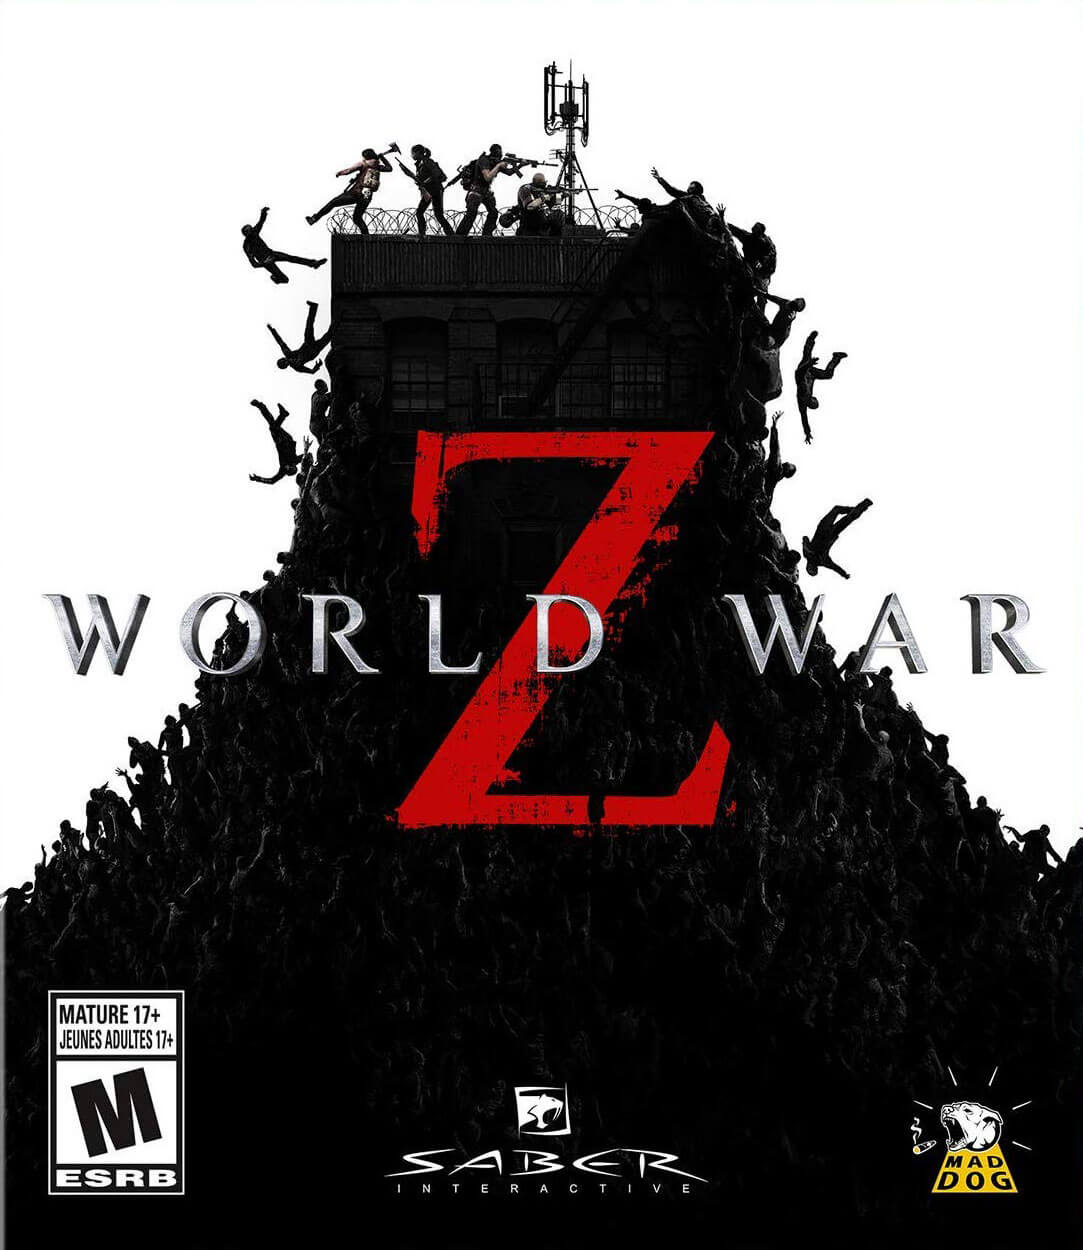 https://img5.downloadha.com/hosein/files/2019/04/World-War-Z-pc-cover-large.jpg